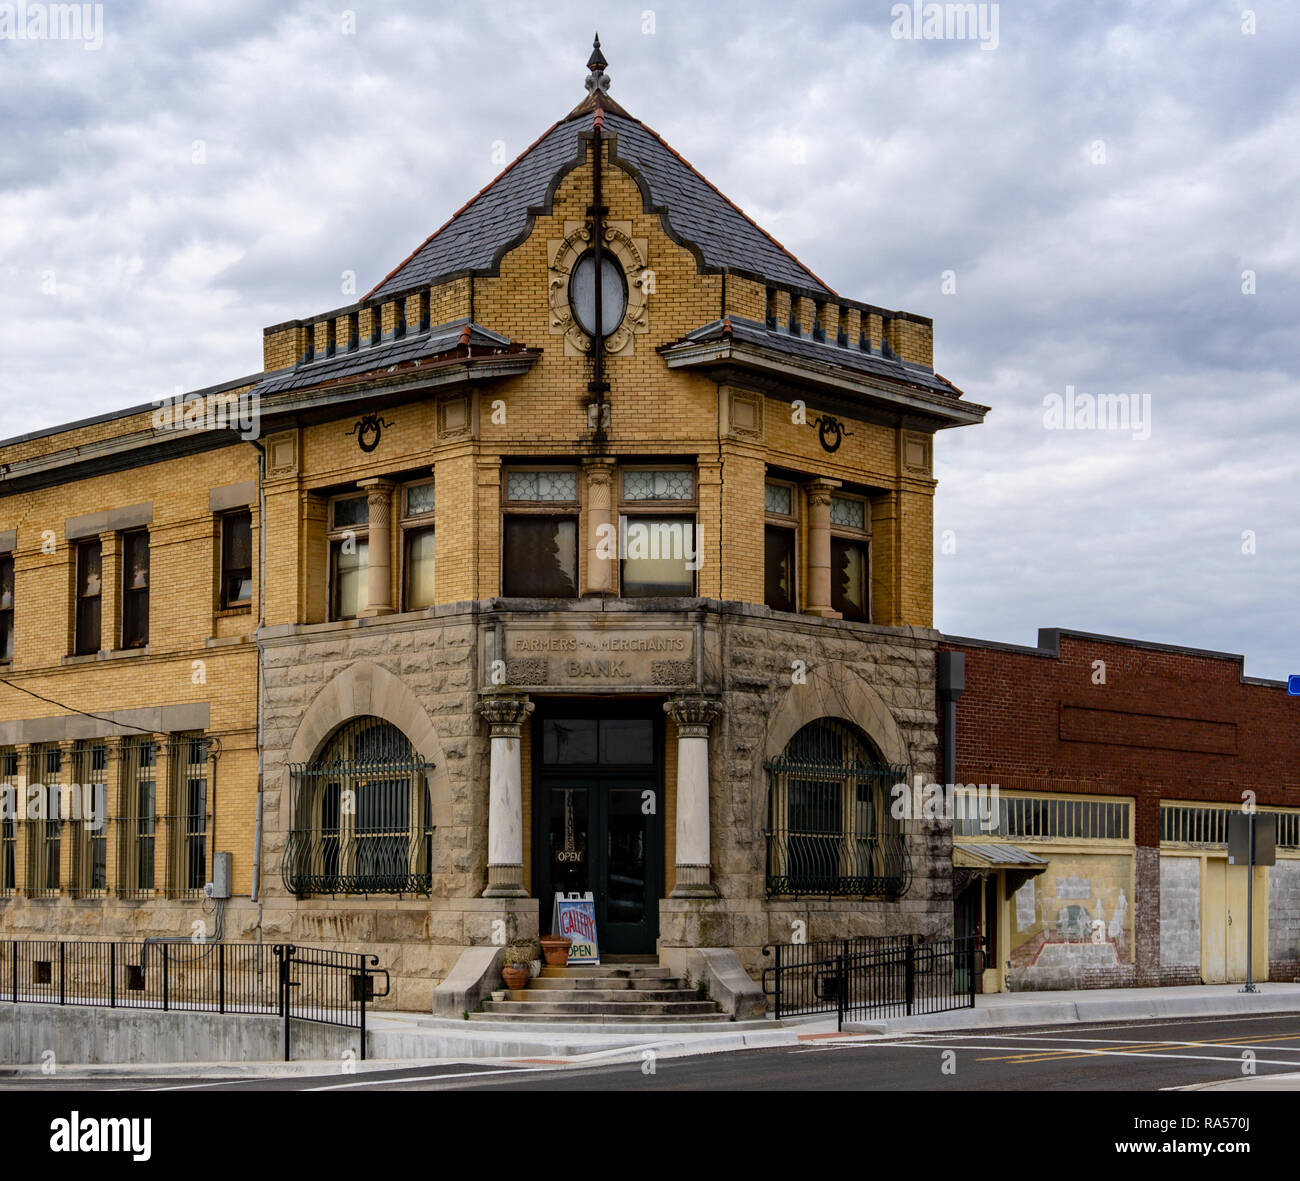 Farmers and Merchants Bank in Pilot Point, Texas where the